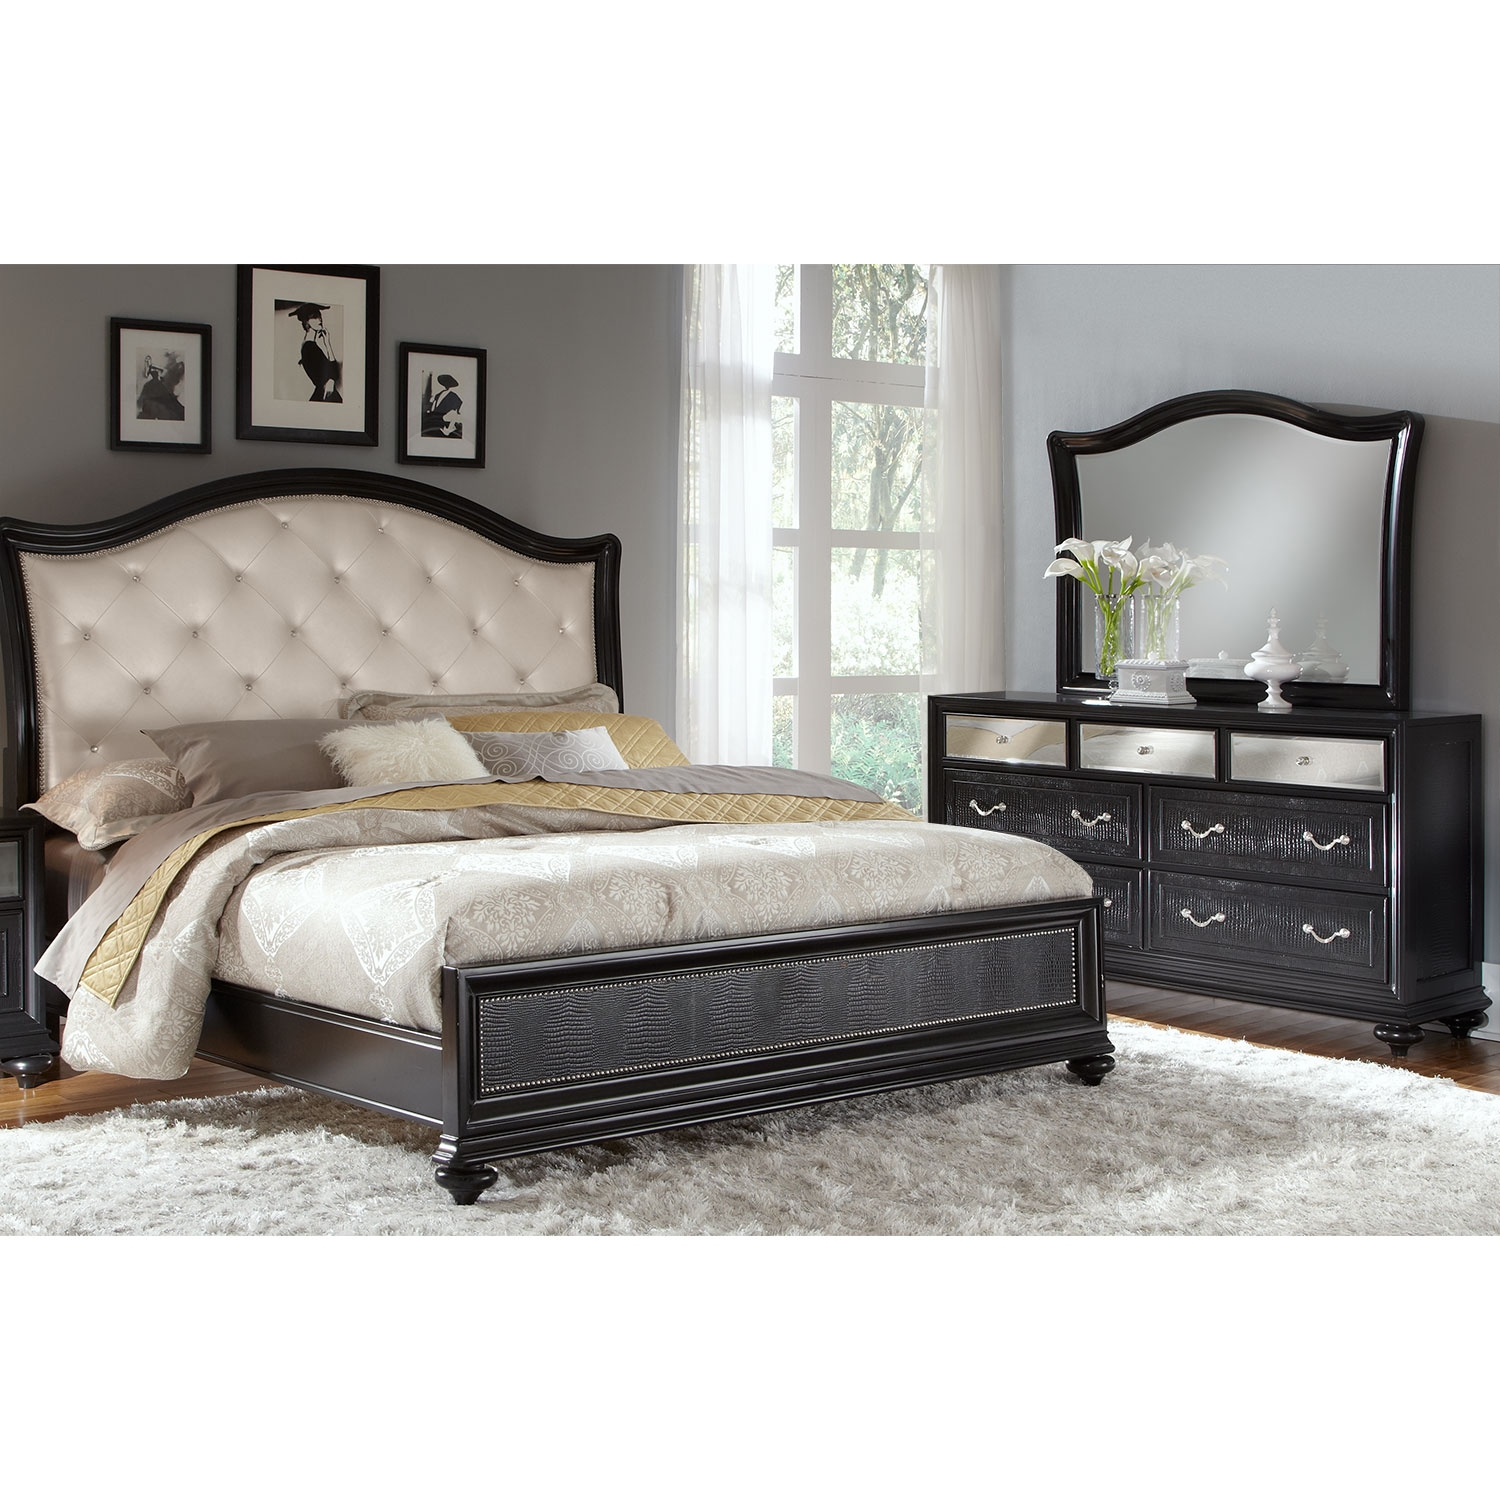 City Furniture Bed Frames